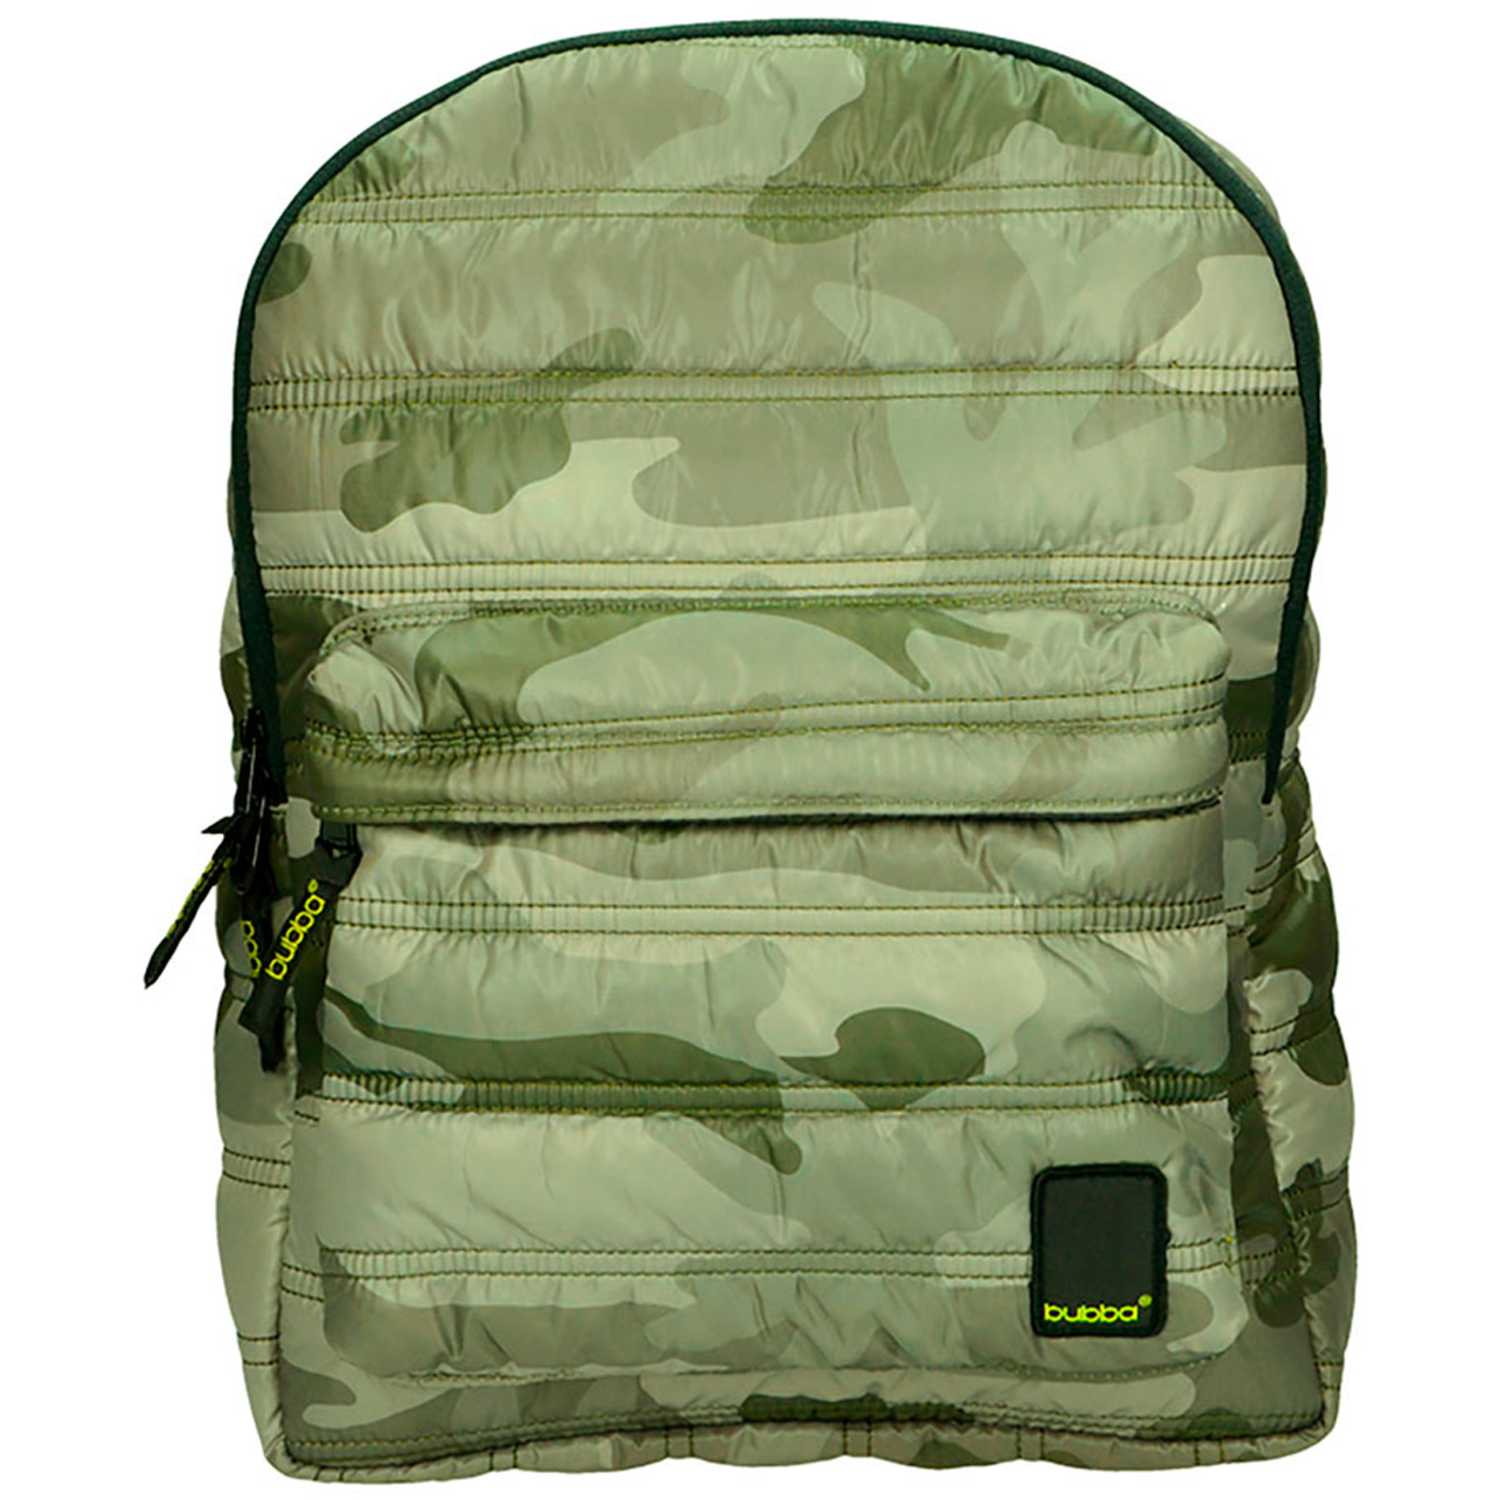 BUBBA mochila bubba le regular Militar Mochilas Multipropósitos